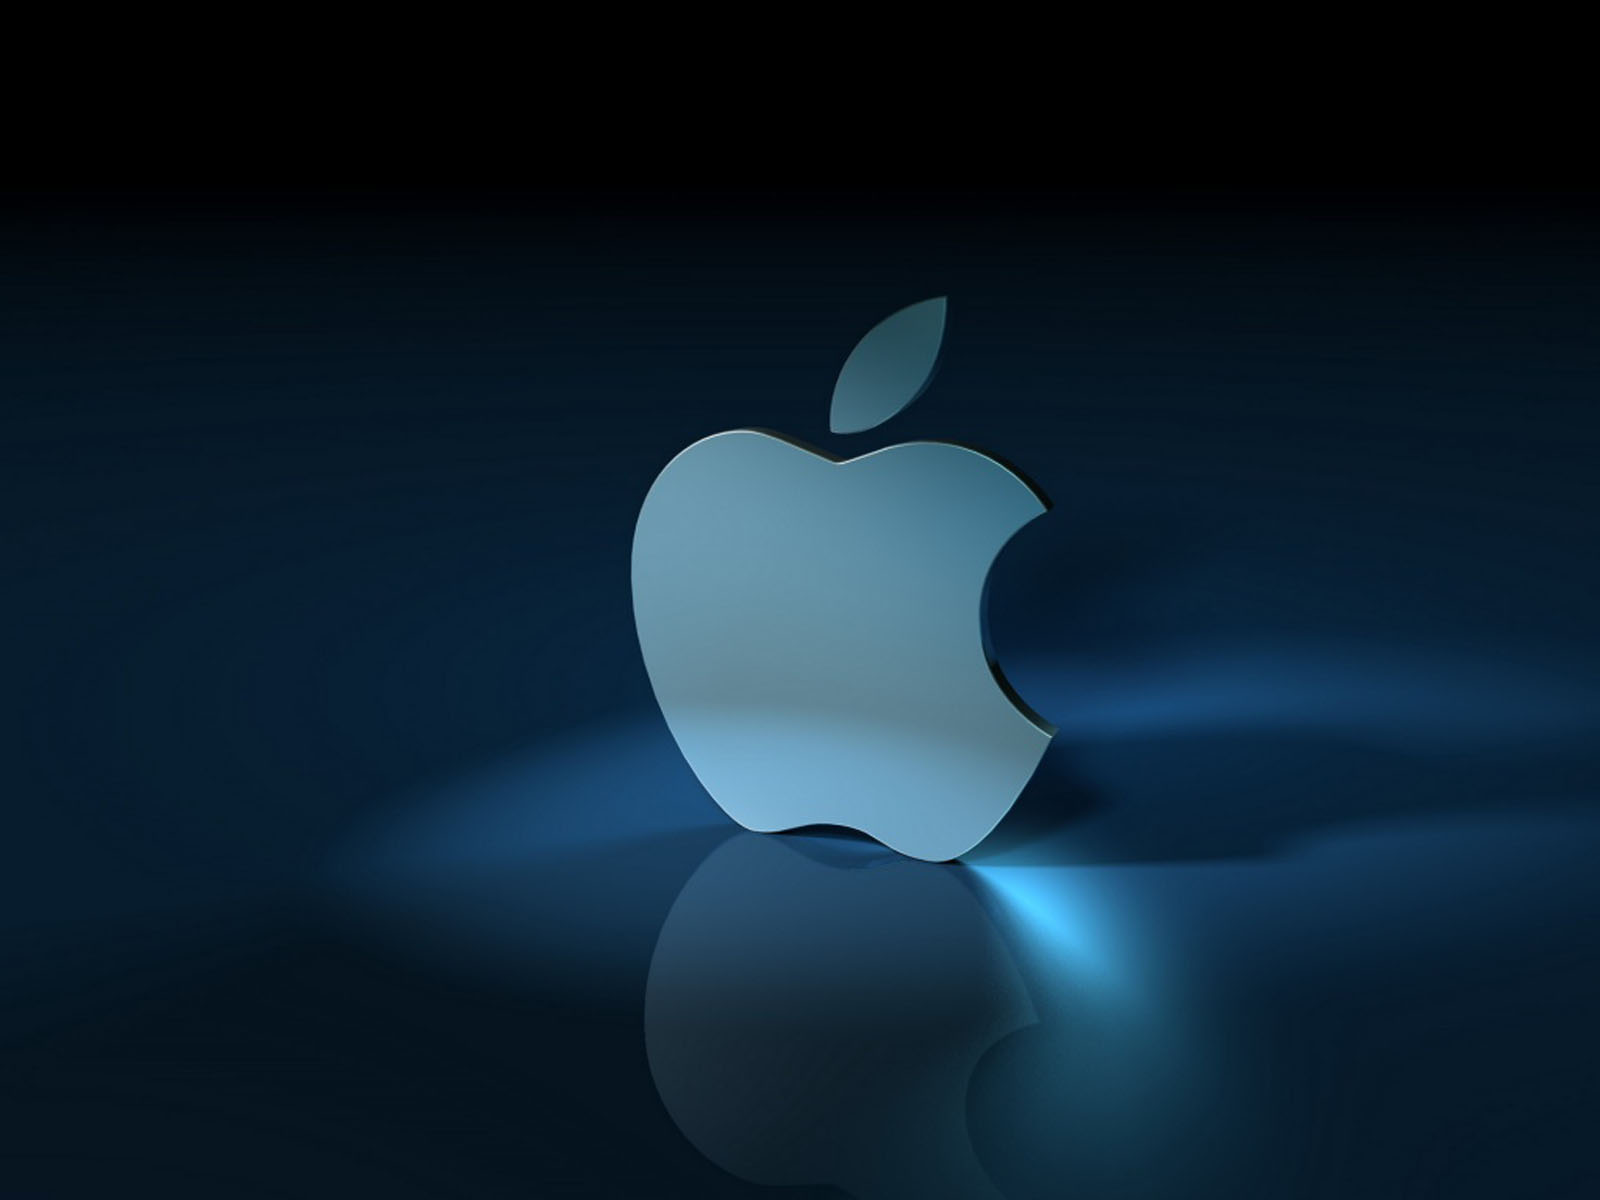 wallpapers Apple Logo Wallpapers 1600x1200